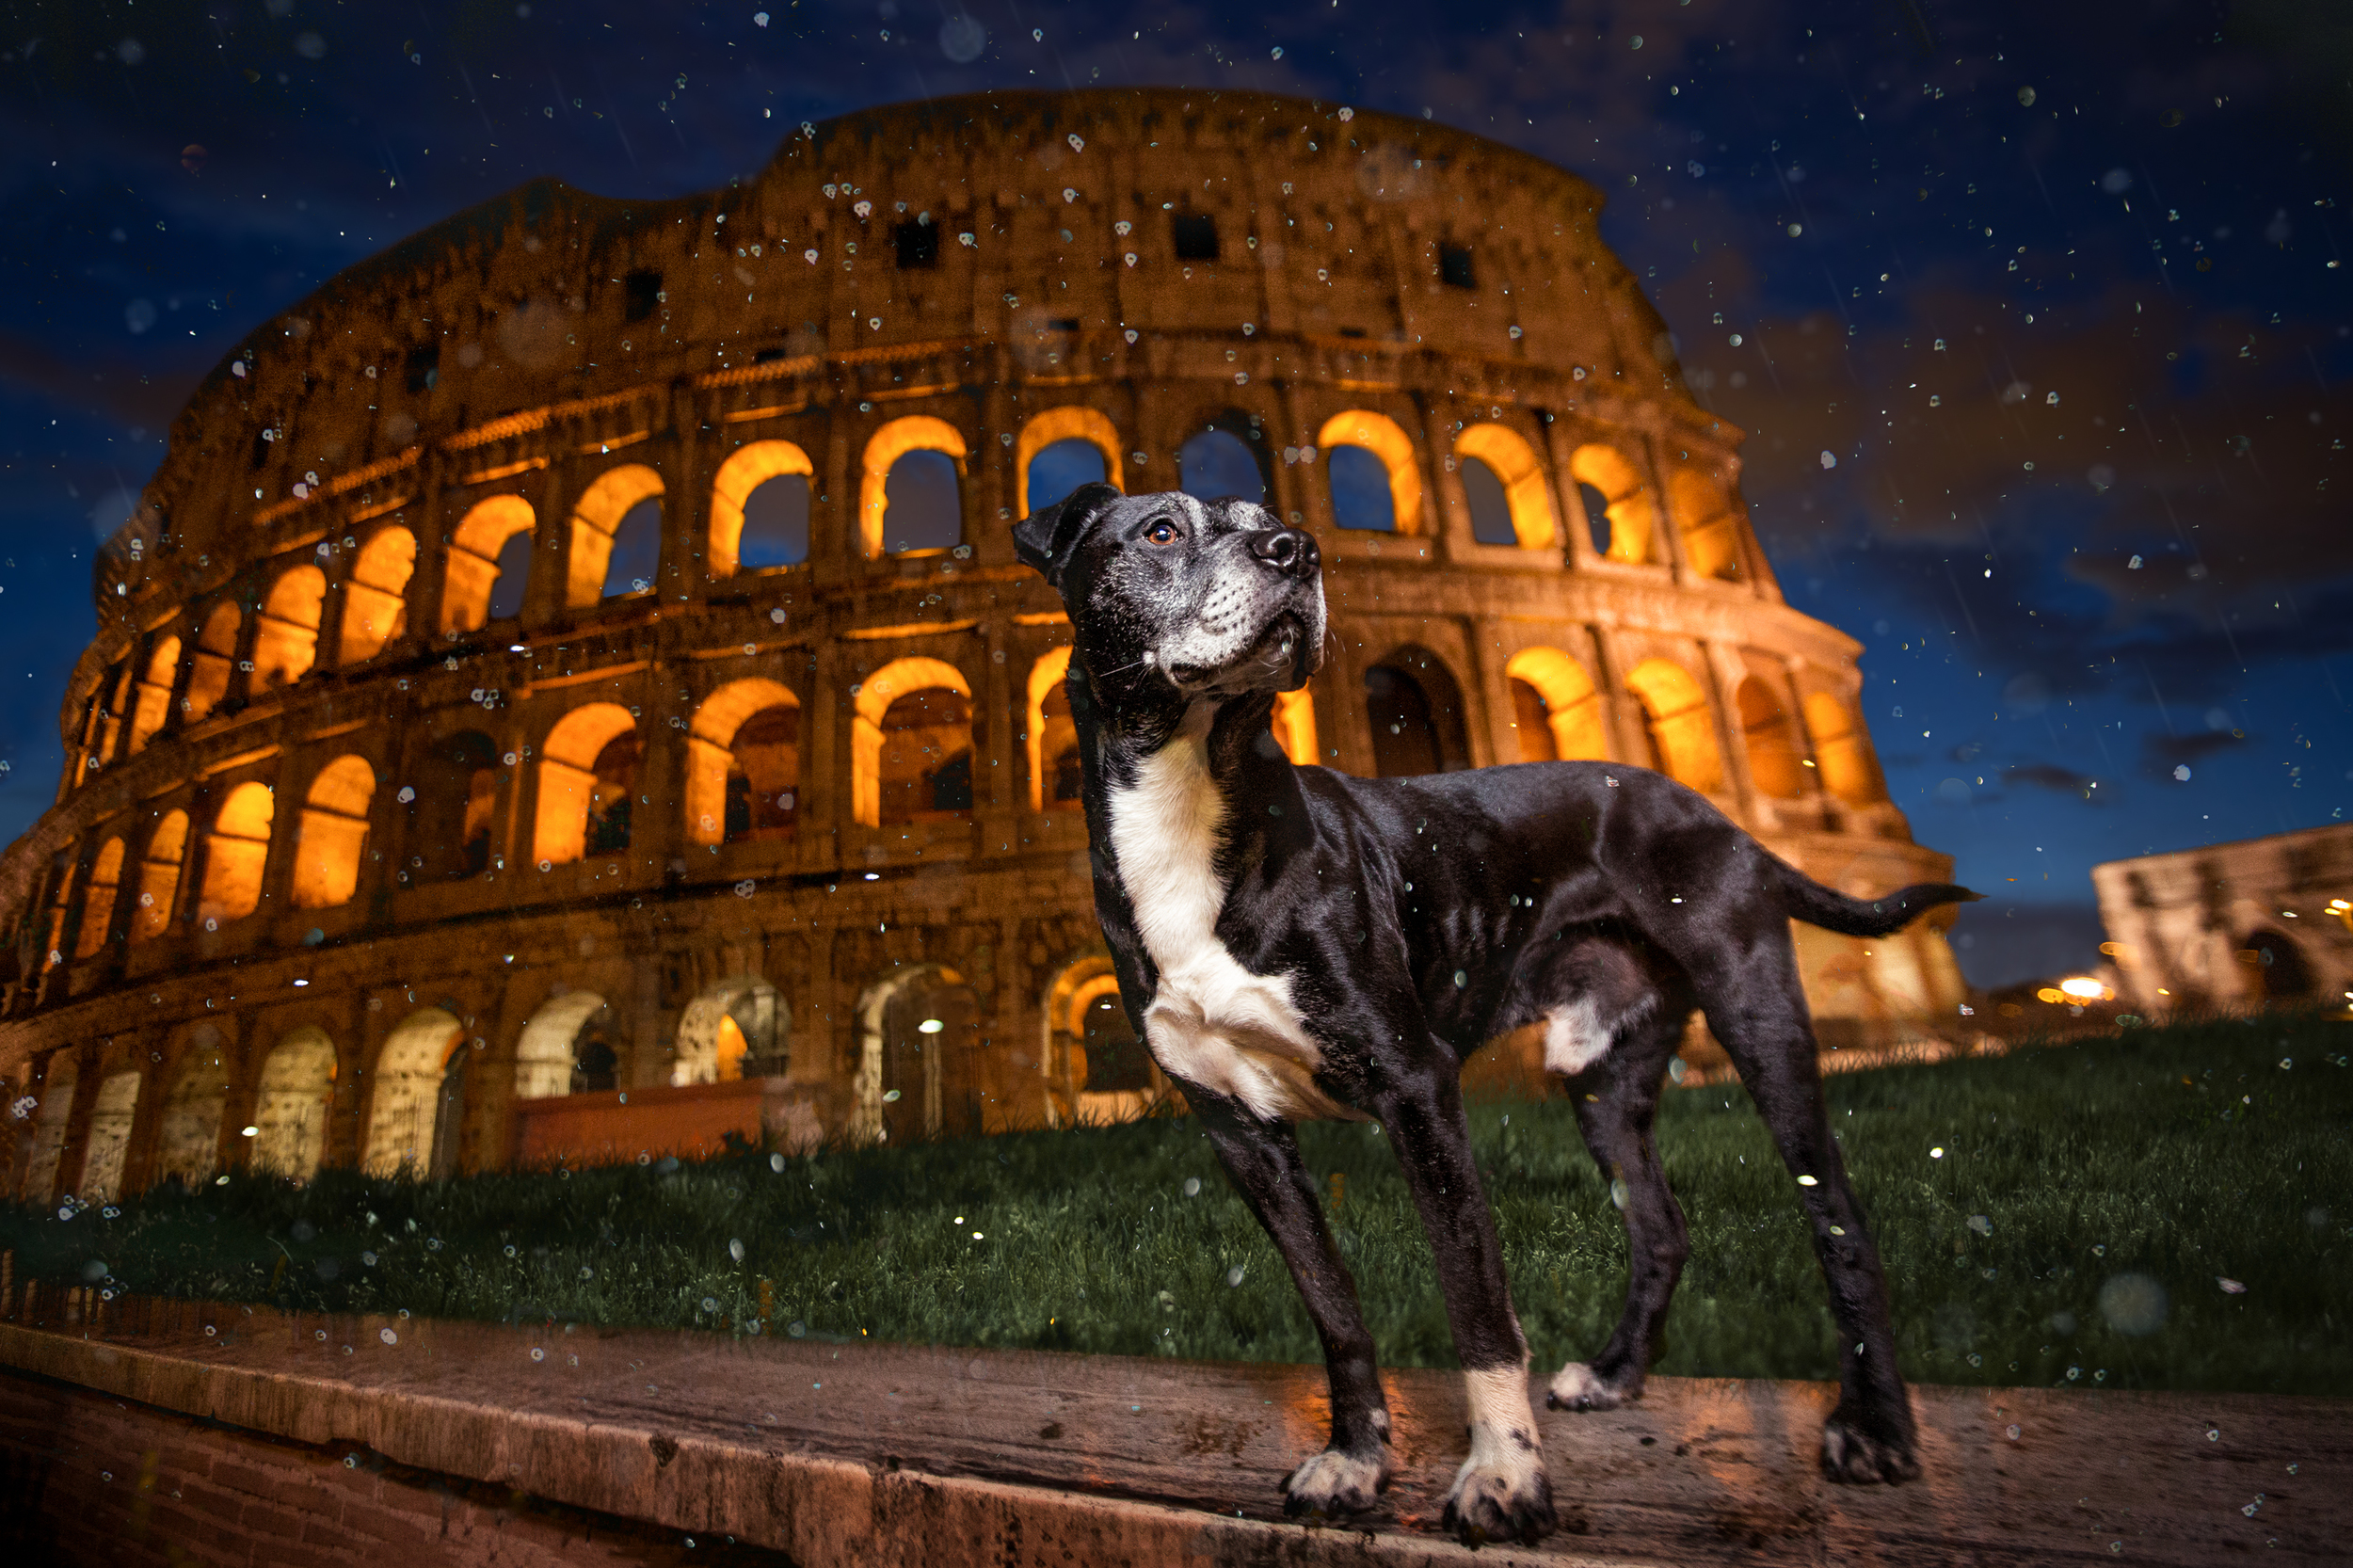 collosseum-dog.jpg